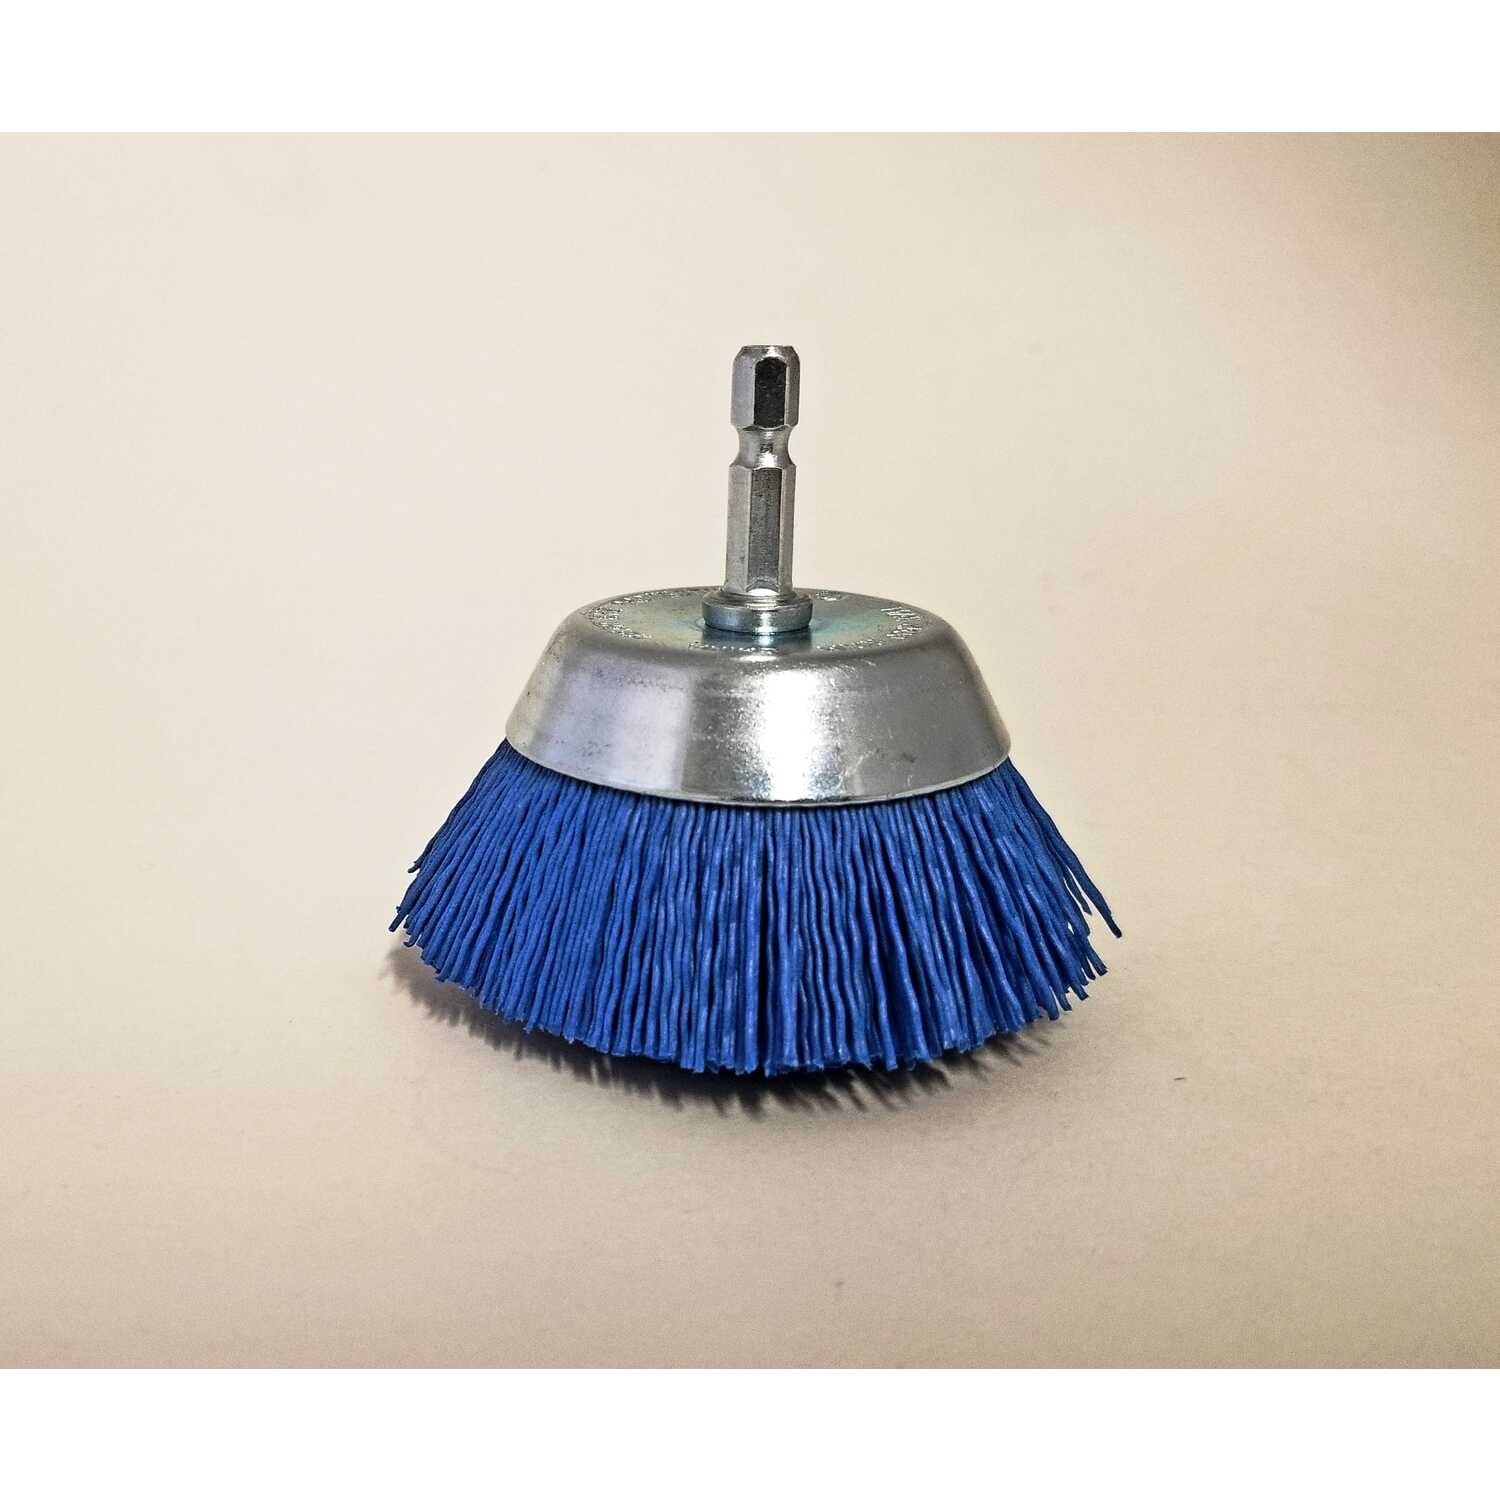 Dico  NYALOX  2.5 in. Dia. x 1/4 in.  x 1/4  Dia. Crimped  Nylon  Mandrel Mounted  Cup Brush  2500 r